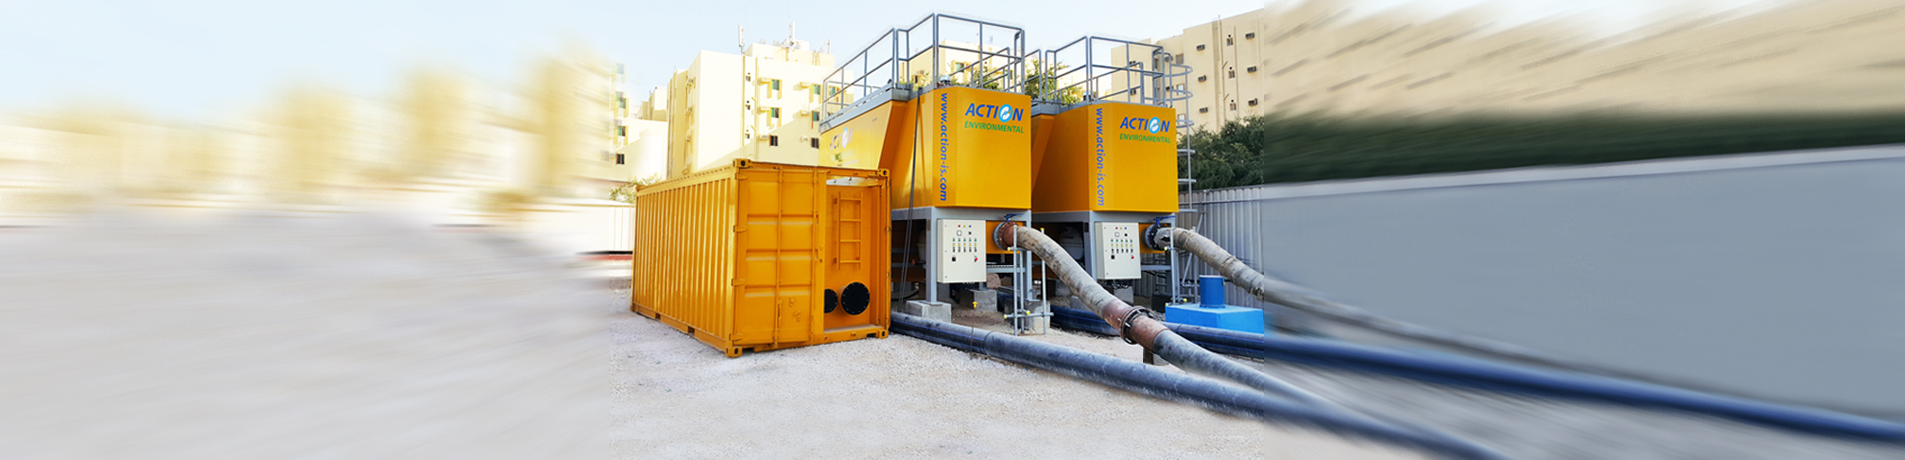 Dewatering - Pipeline Process Services - Water Treatment | Dubai